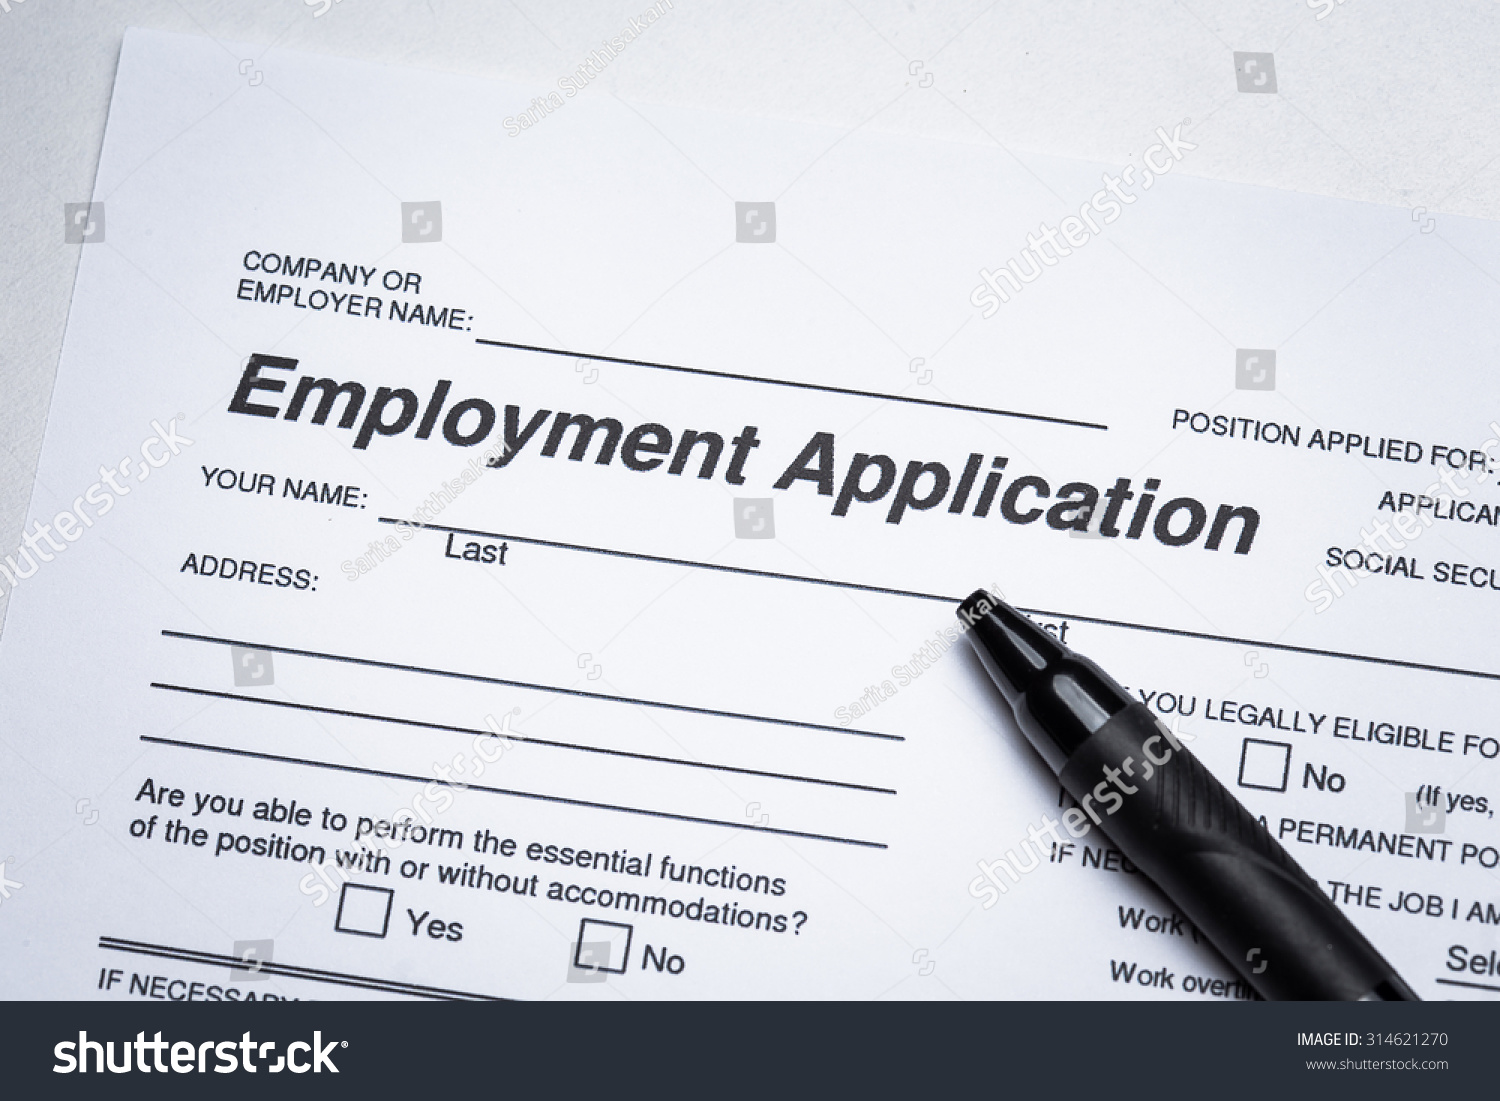 royalty completing an job application form  completing an job application form focus on heading 314621270